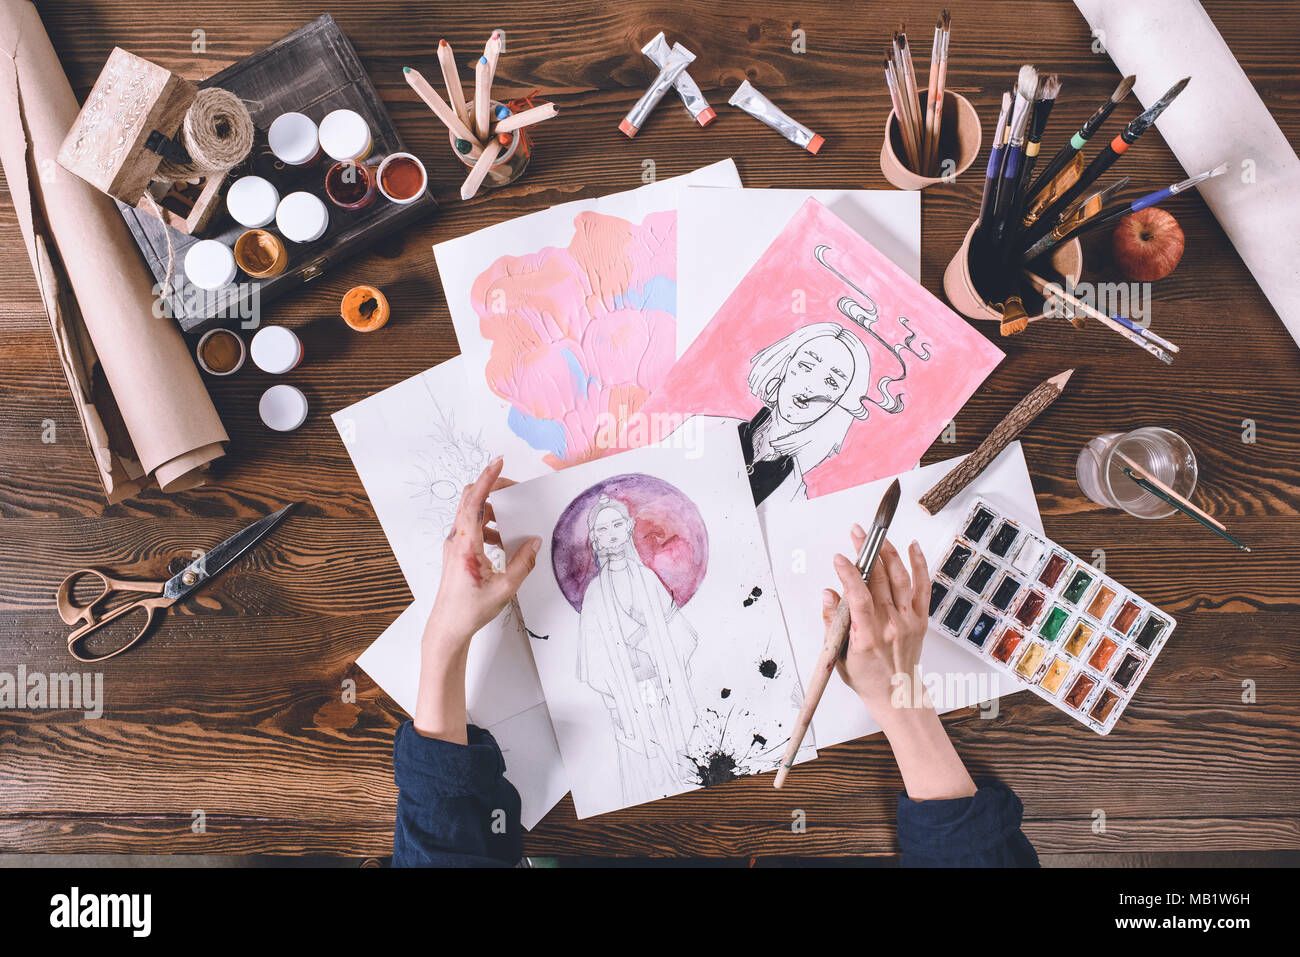 top view of artist painting with watercolor paints - Stock Image